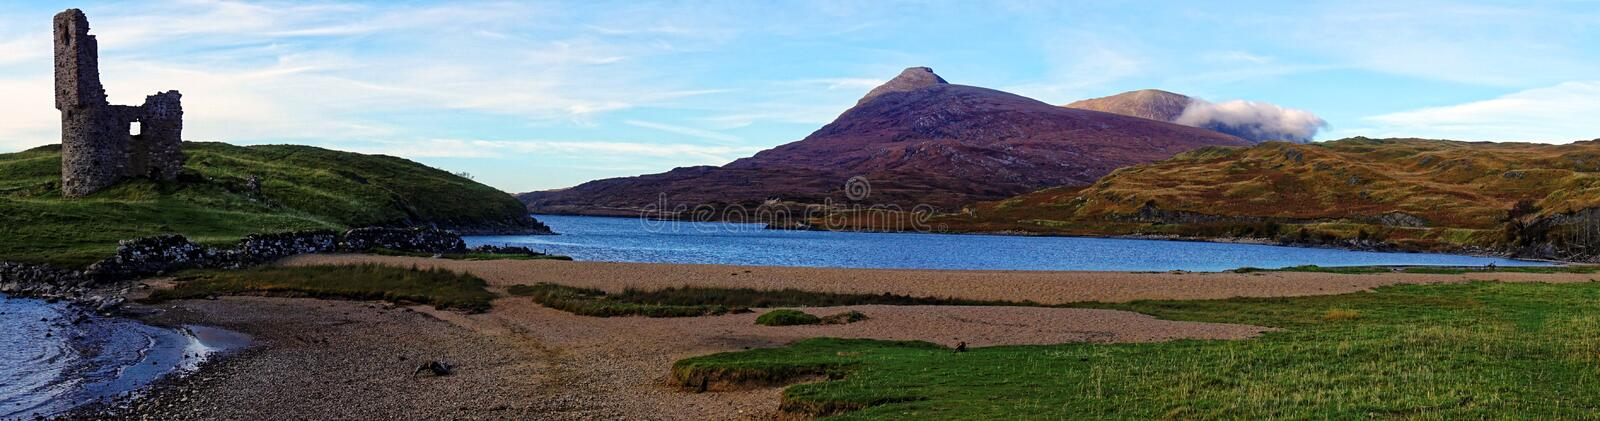 Panorama of Scottish Loch, Castle and Mountains stock photo